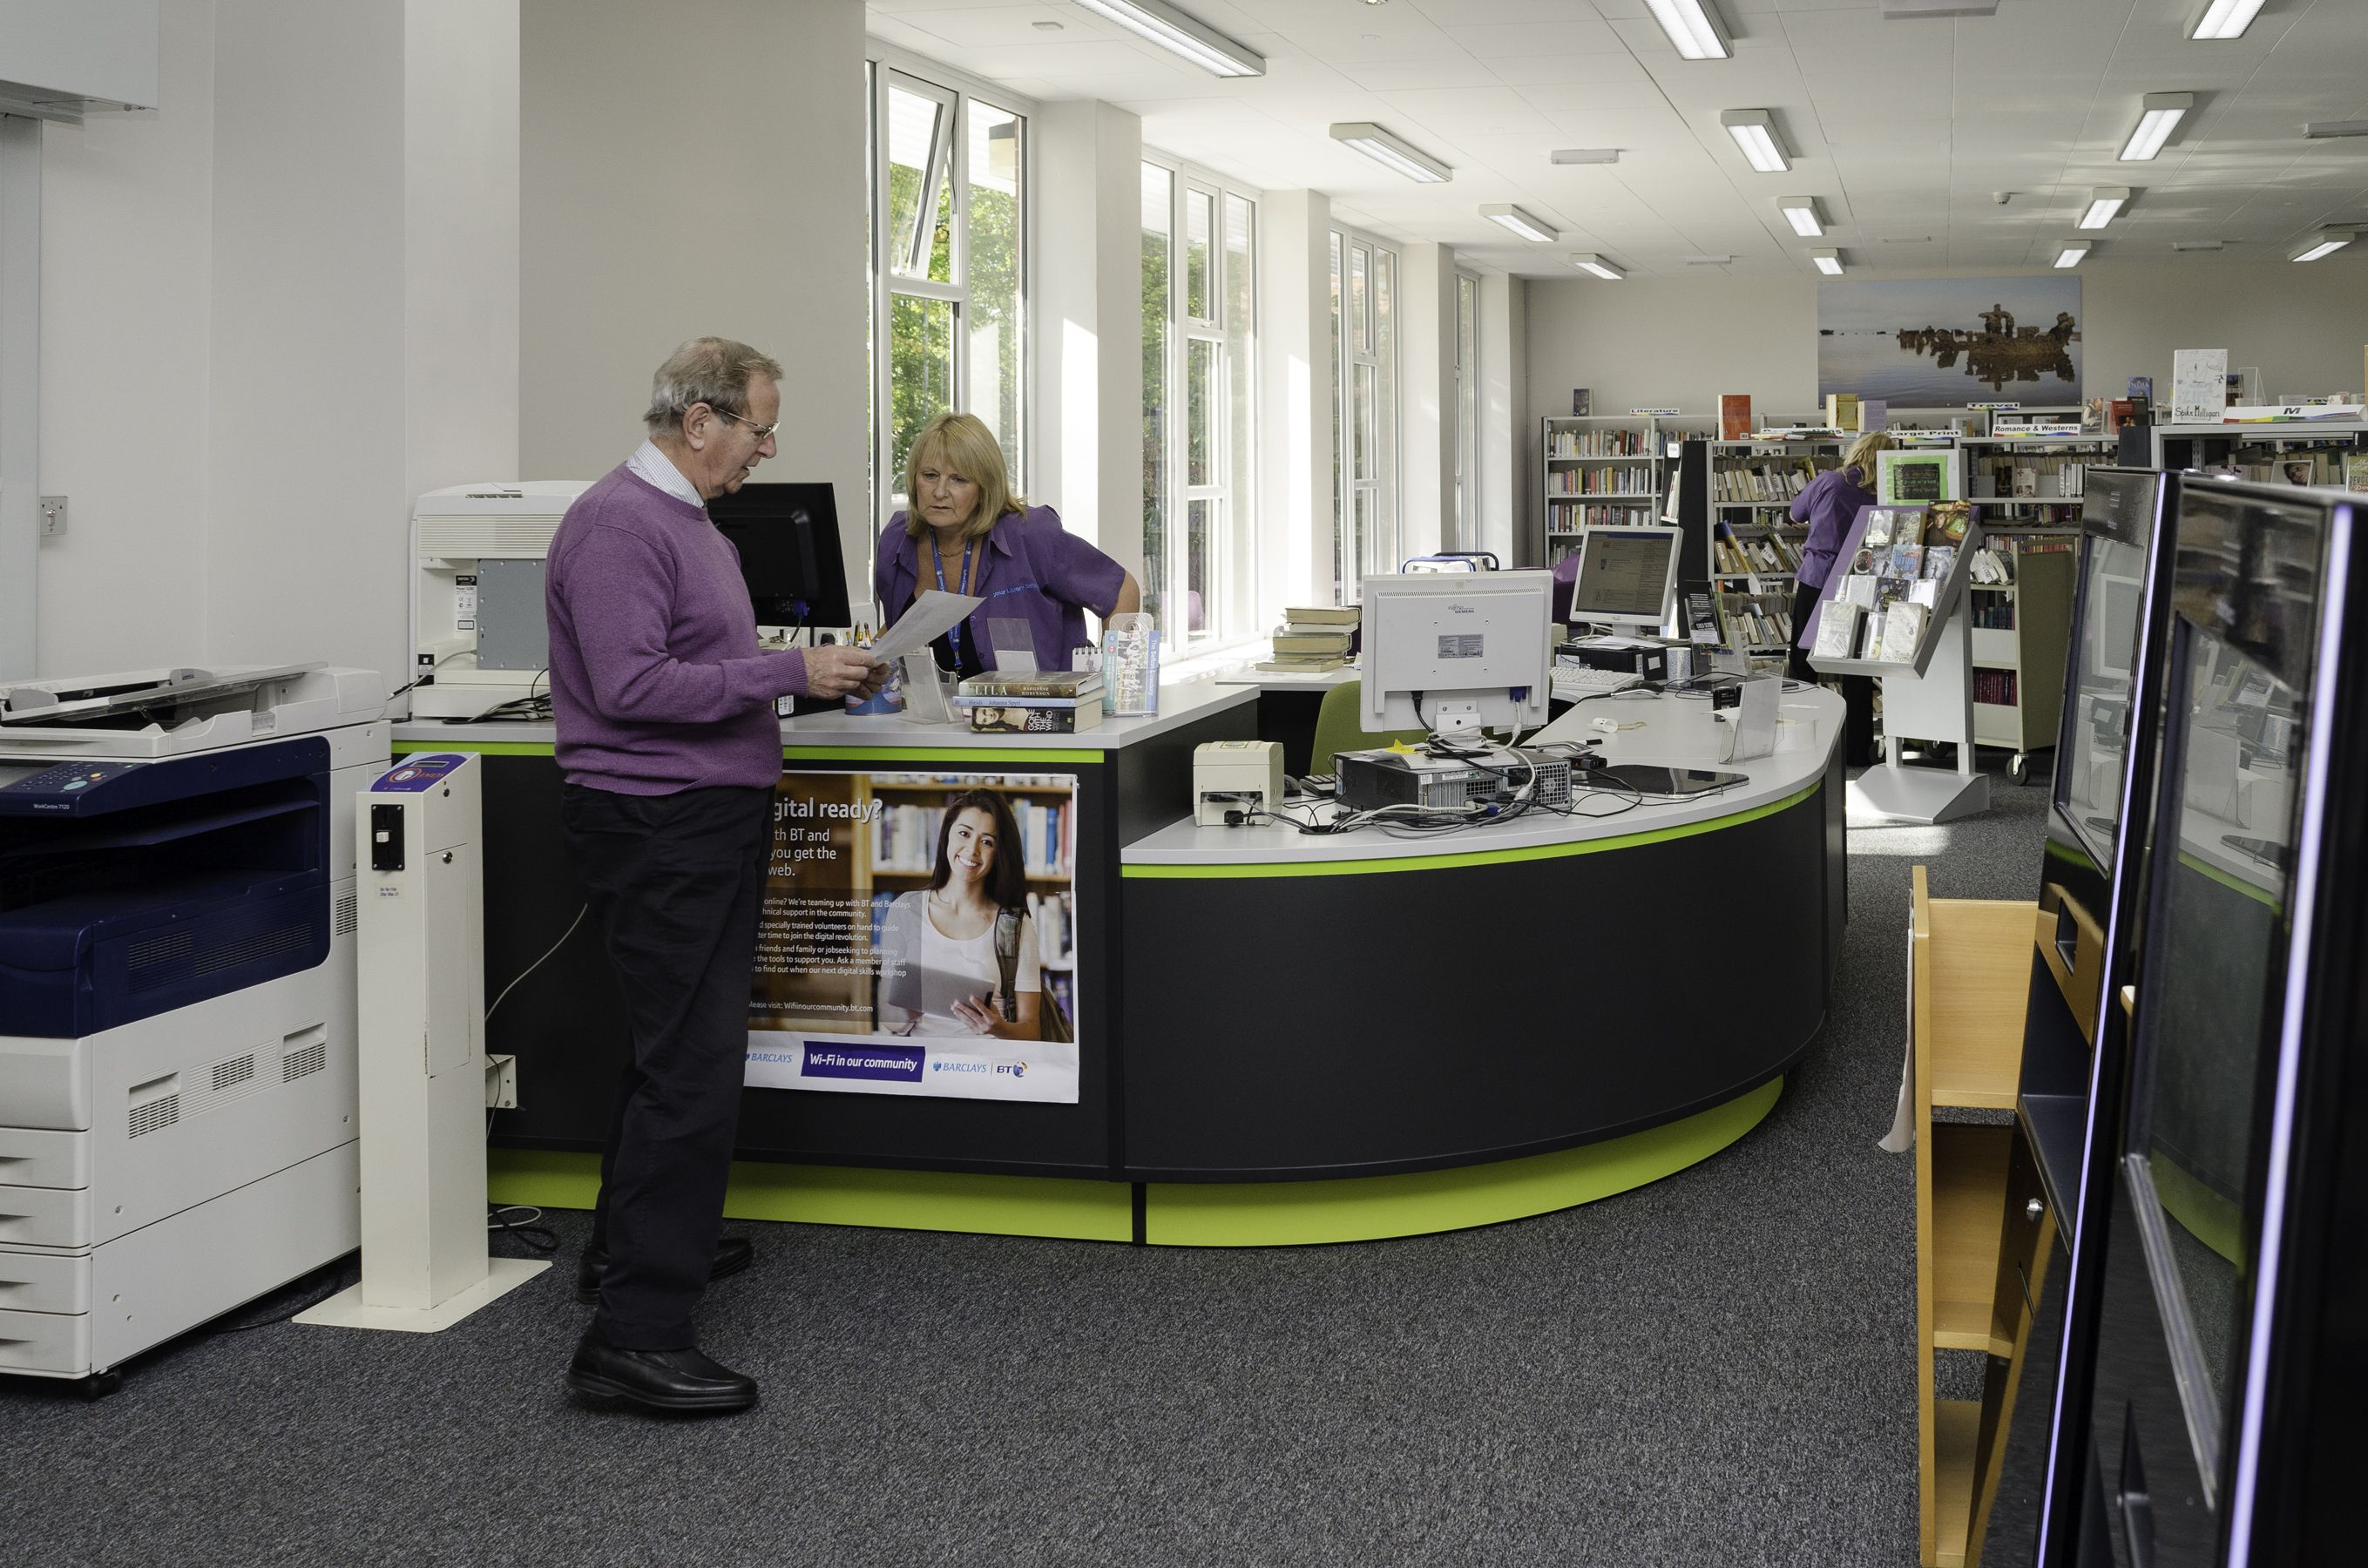 Customers and staff can now enjoy the modern, bright and airy library.